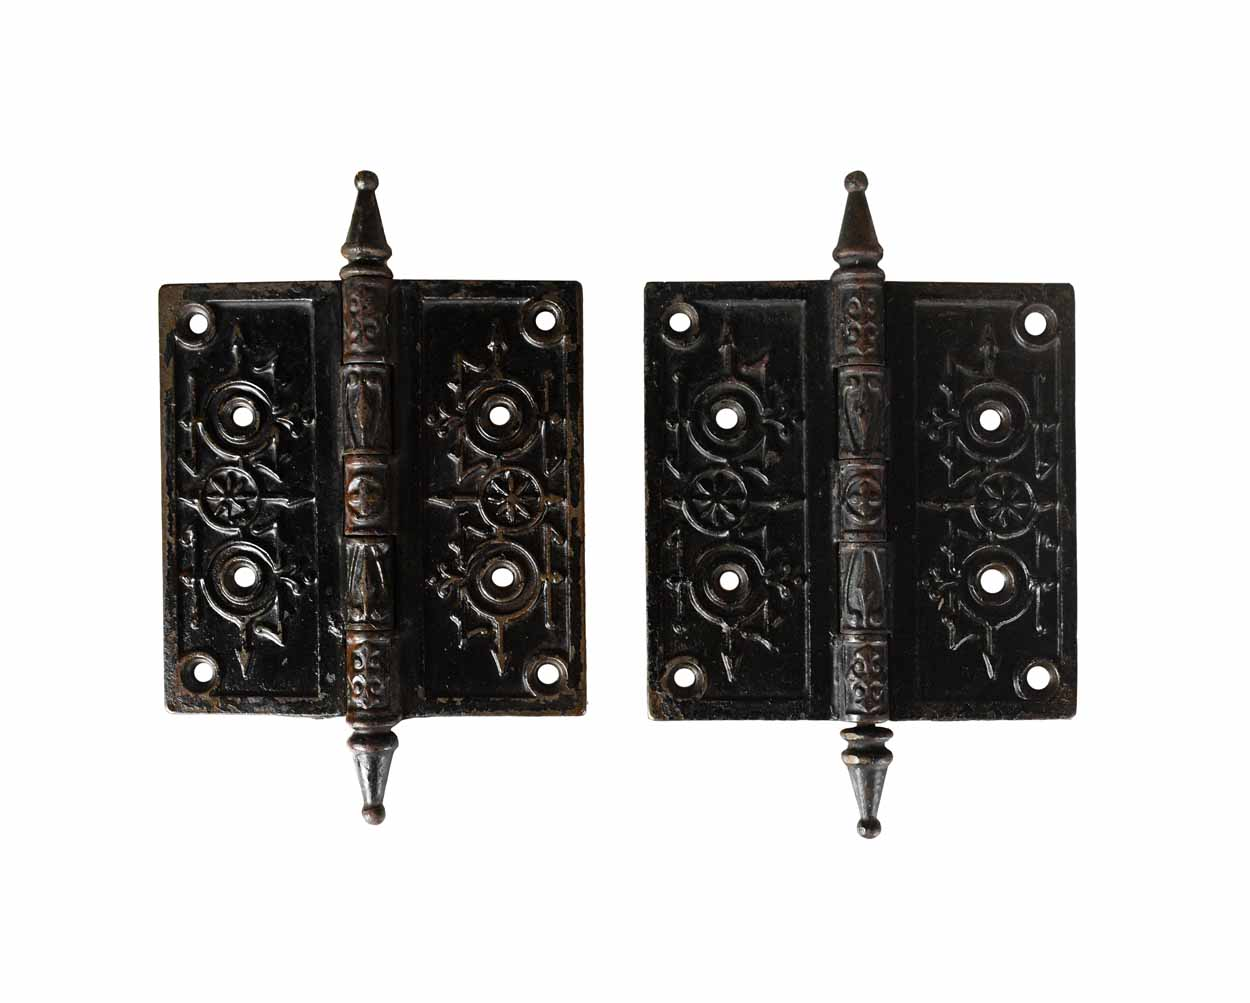 VICTORIAN STEEPLE HINGE PAIR AA# 43887   1 pair available $195.00 for pair